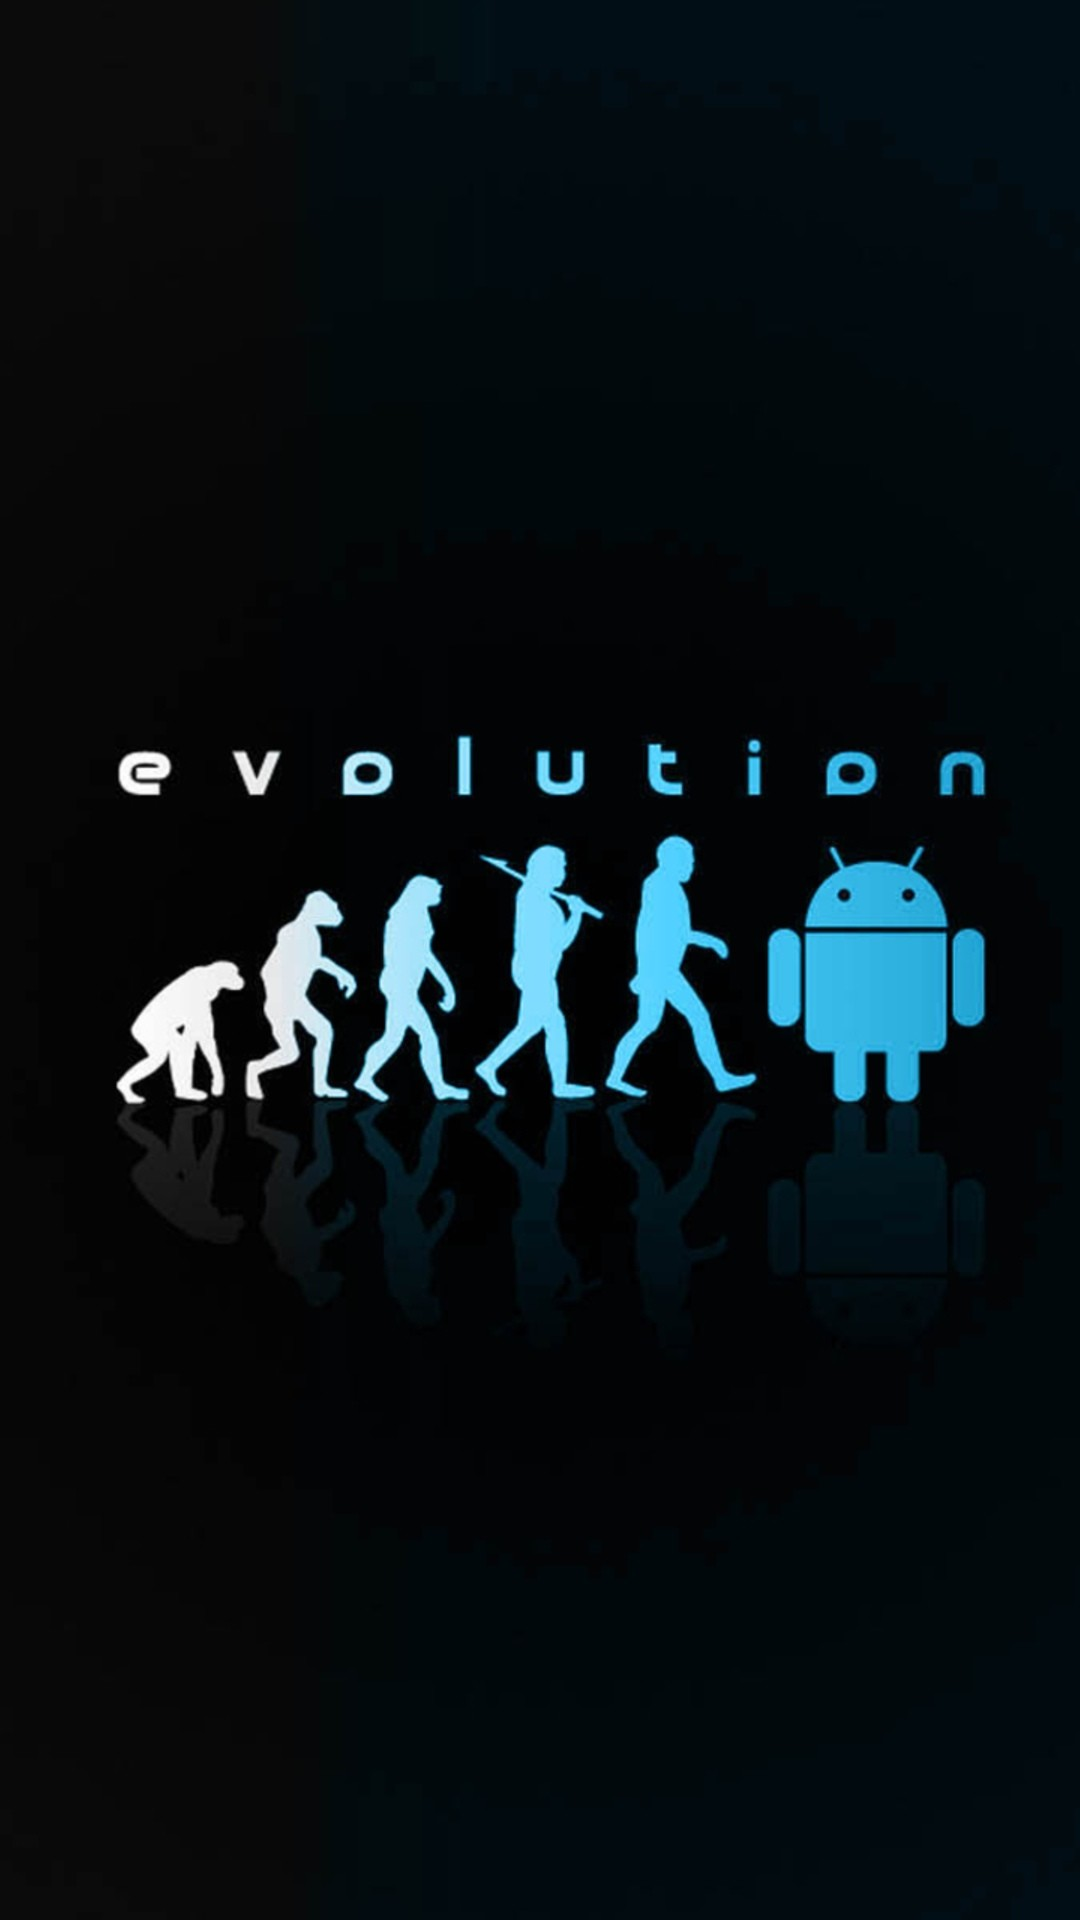 1080x1920 632. Android Evolution Smartphone Wallpapers HD